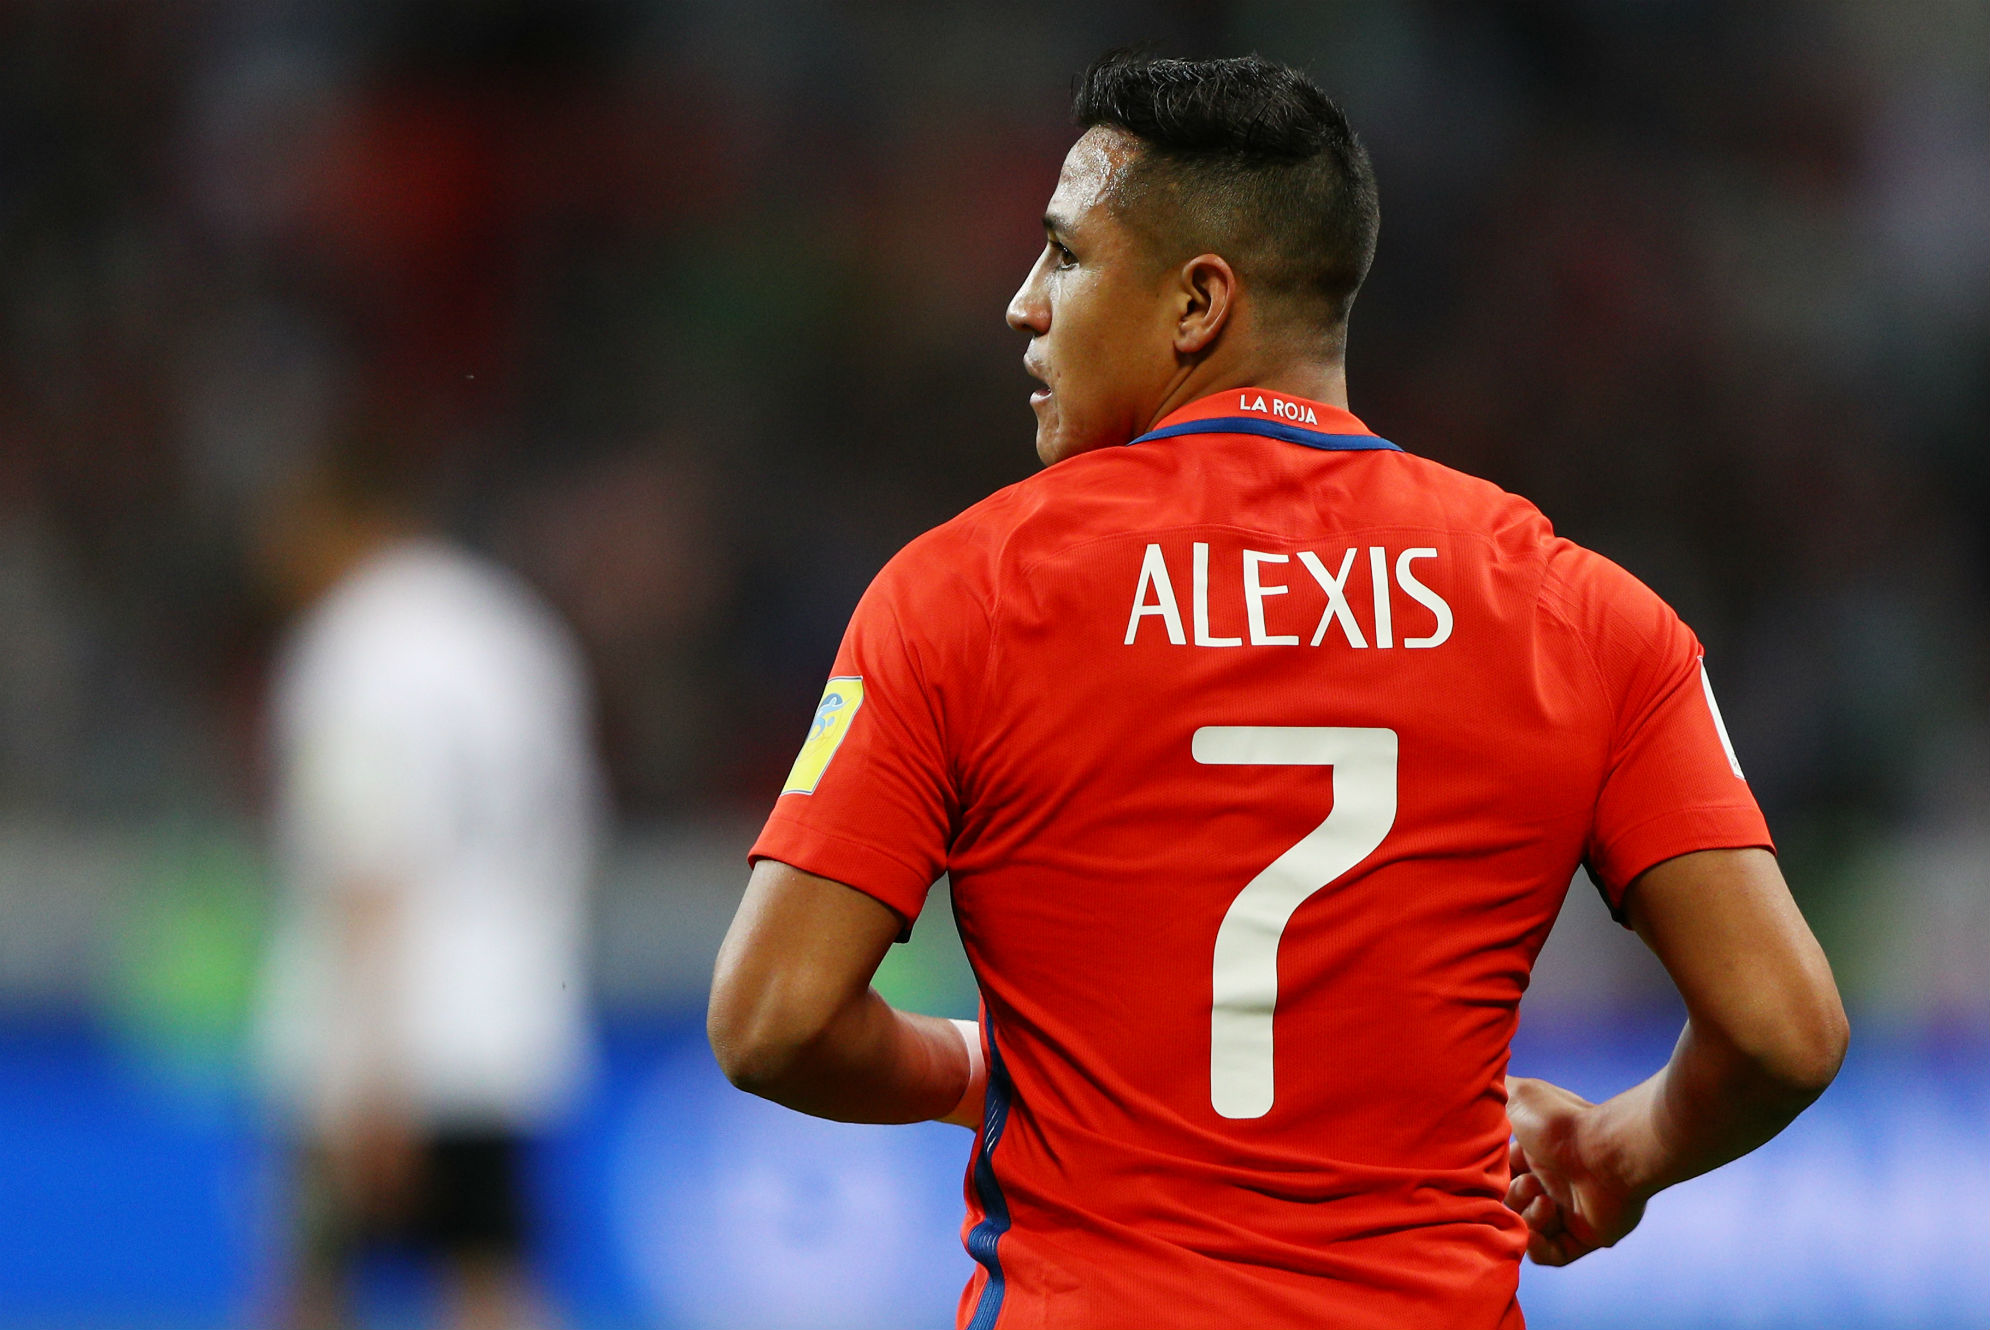 Di marzio provides latest update on alexis sanchezs rumoured photo getty images stopboris Image collections